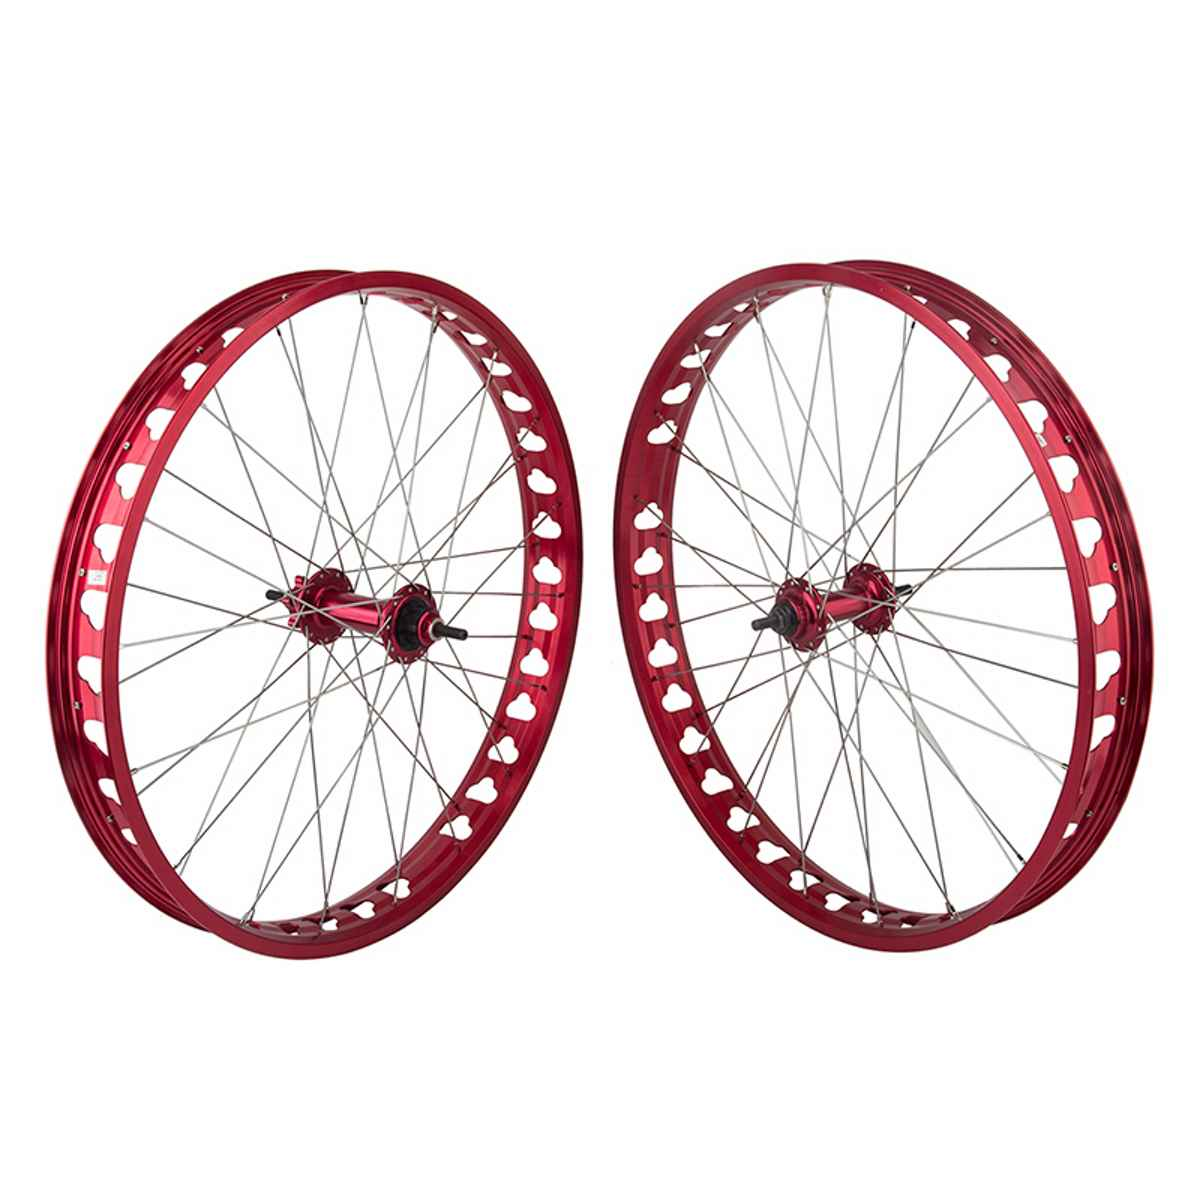 SE Bikes SE Bikes 26 Inch Fat Wheel Set - 640486